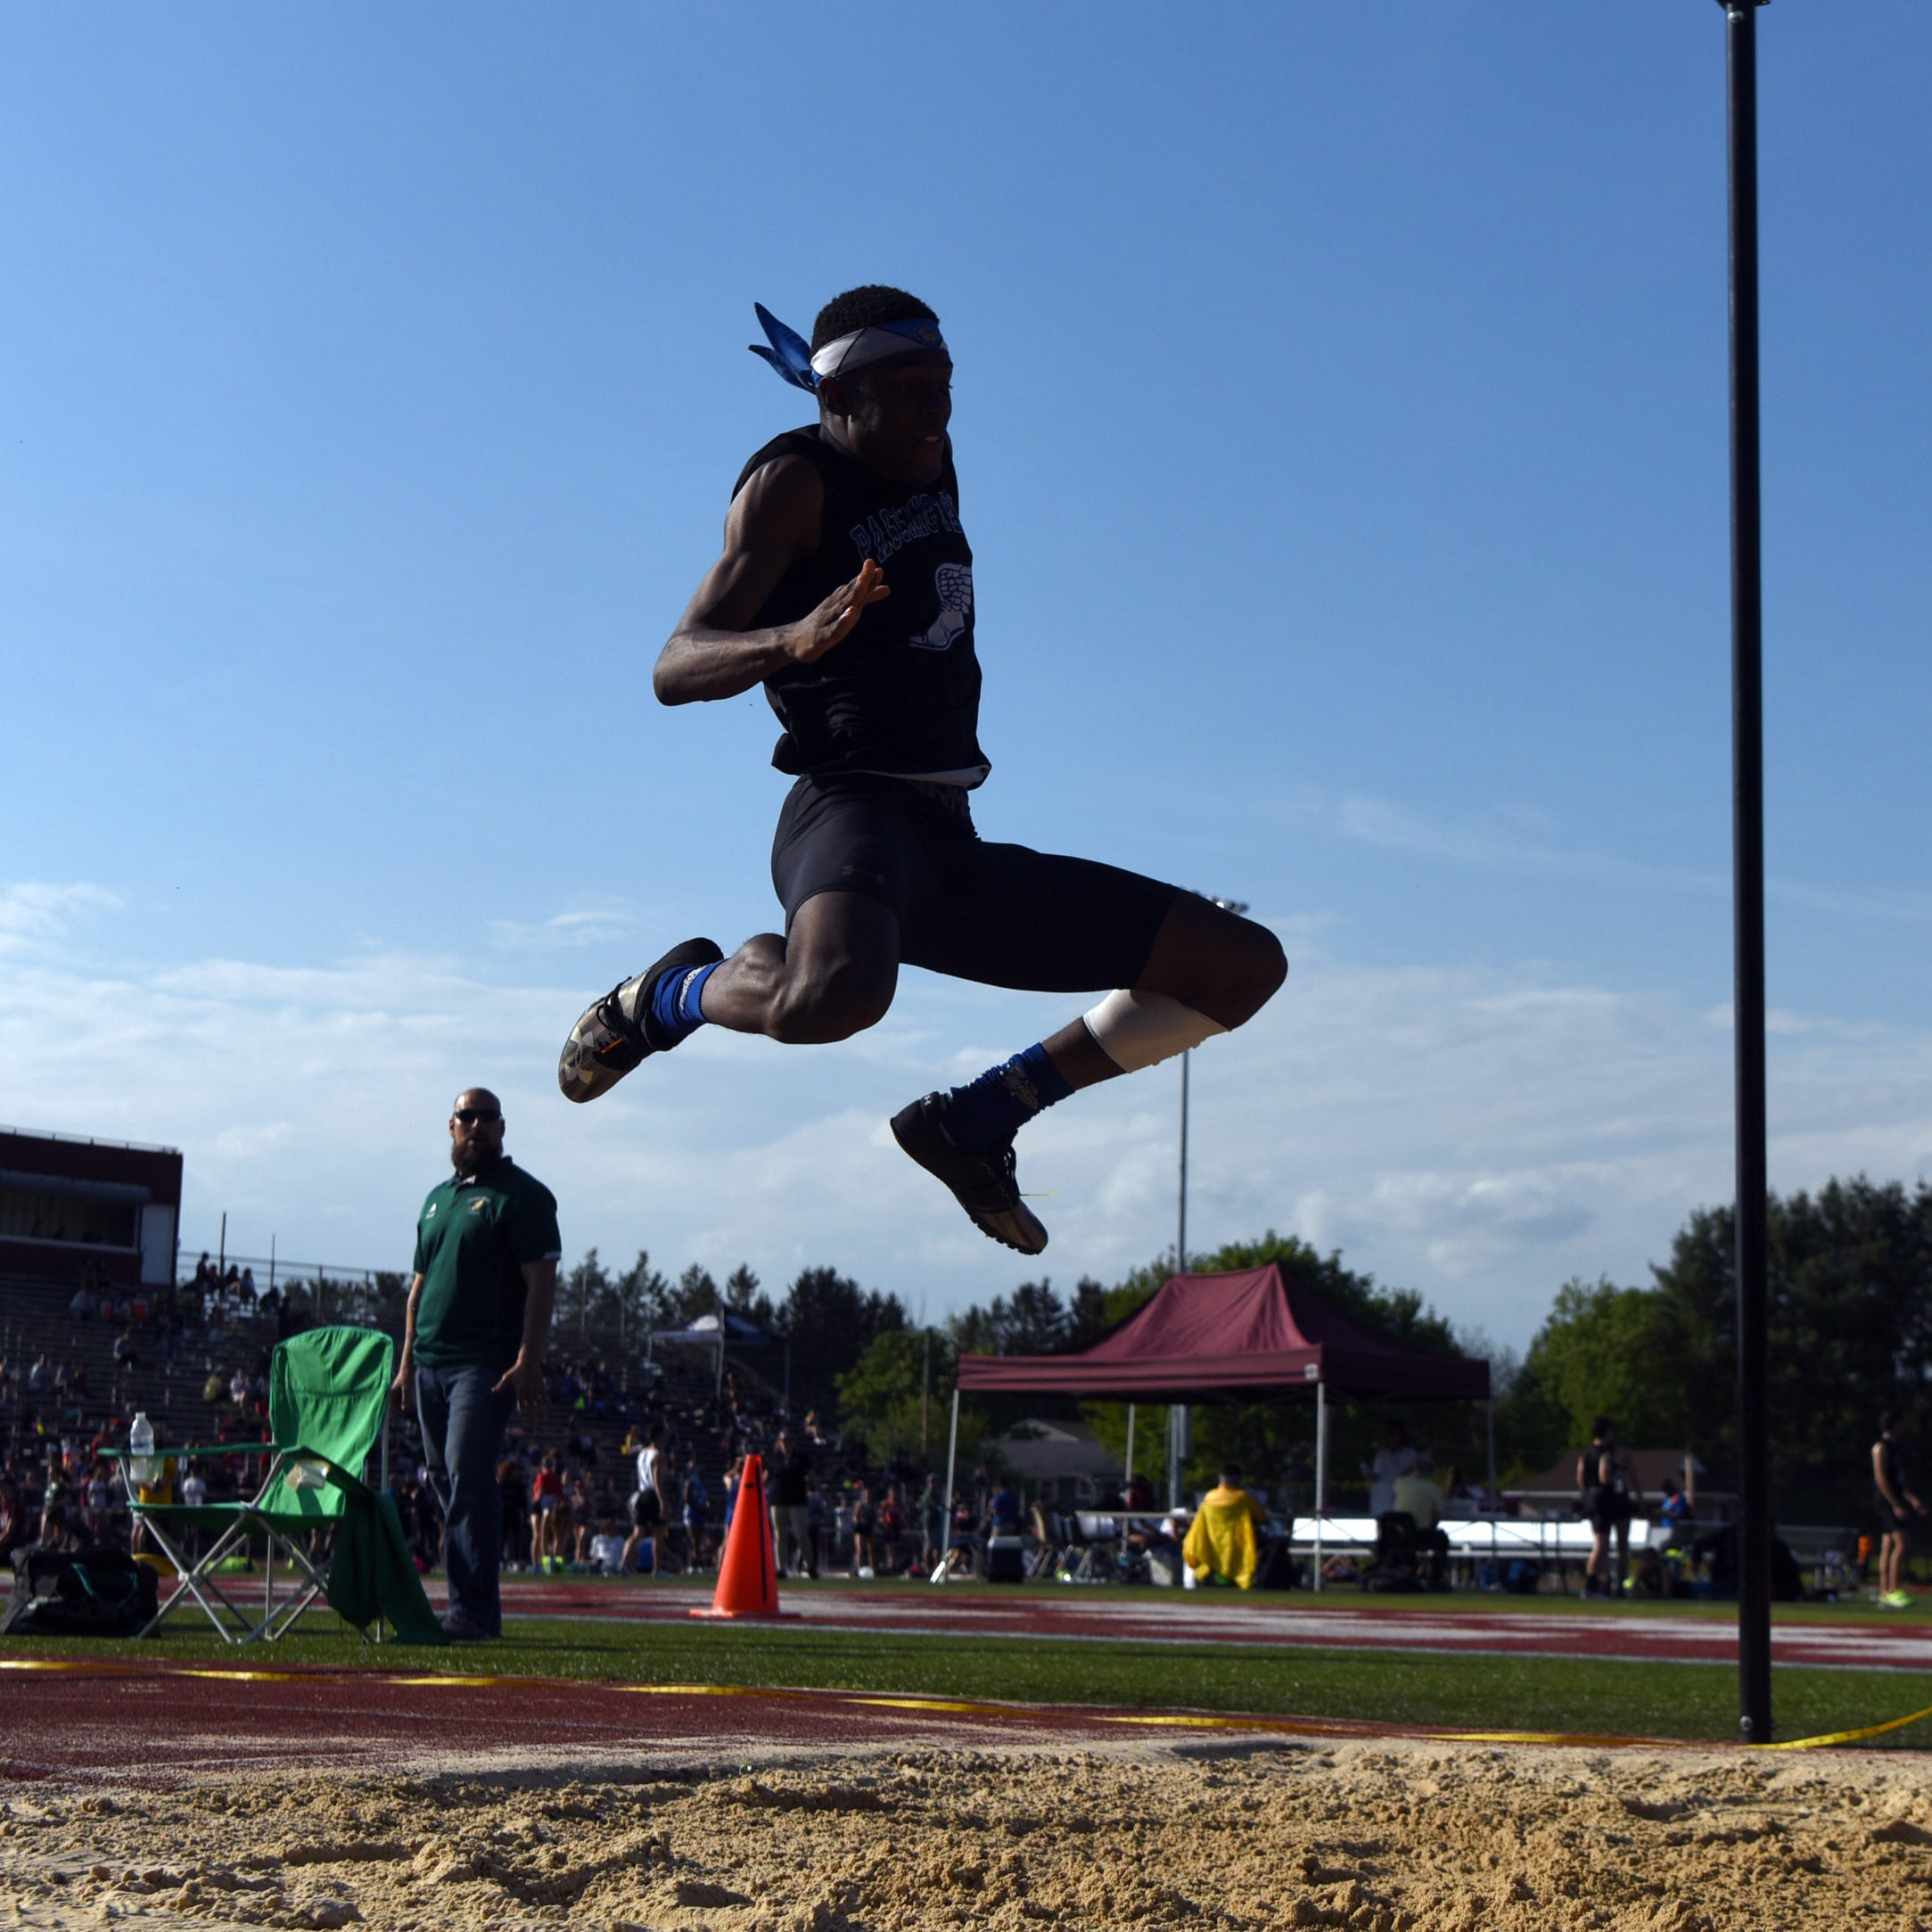 Day one of the Passaic County Track and Field Championships were held at Wayne Hills High School on Tuesday, May 7, 2019.  Joel Ingram soars through the air in his winning triple jump of 46 feet 11 inches.